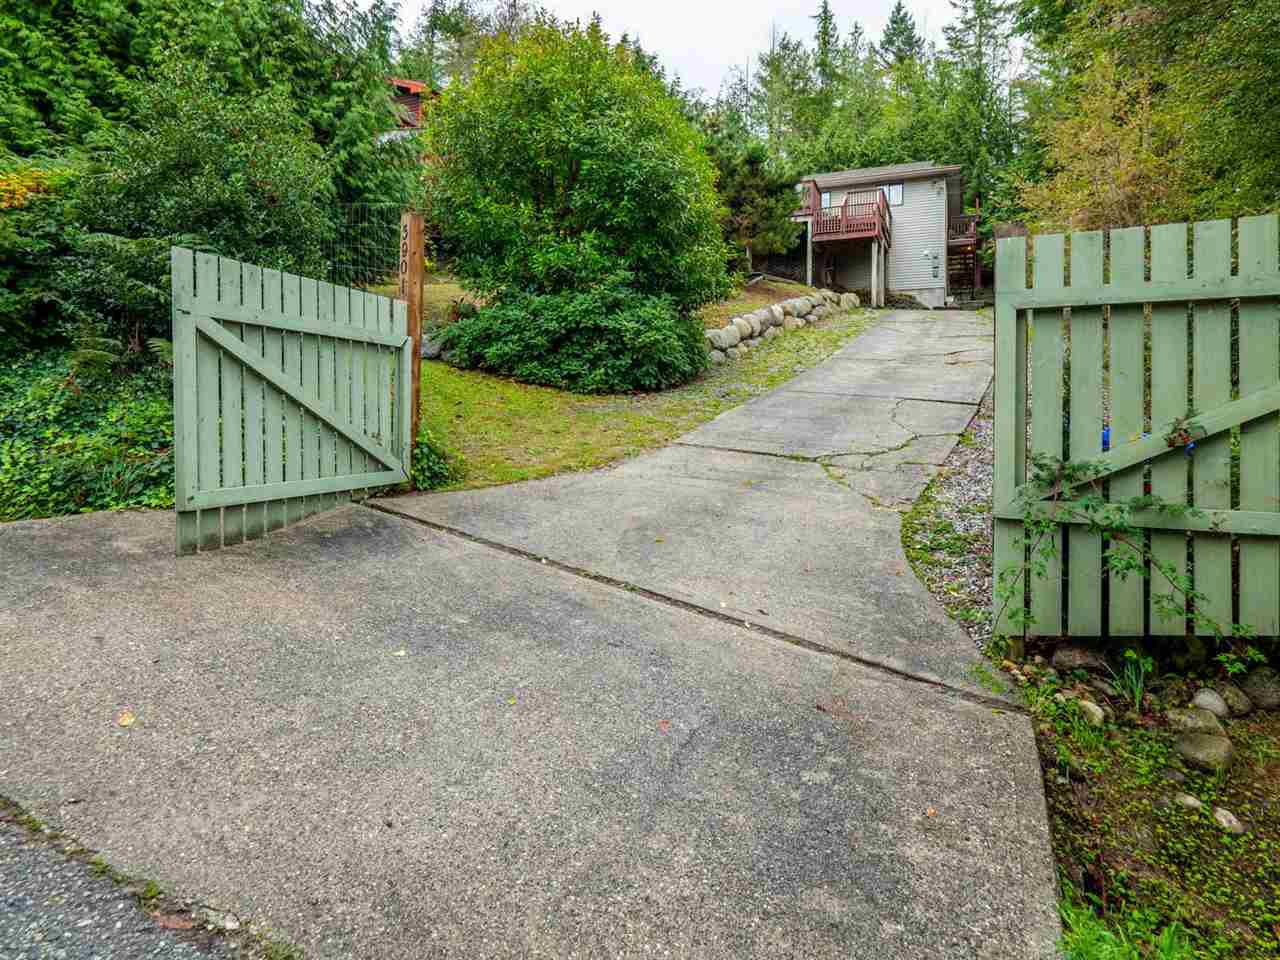 Main Photo: 5901 SKOOKUMCHUK Road in Sechelt: Sechelt District House for sale (Sunshine Coast)  : MLS®# R2400801